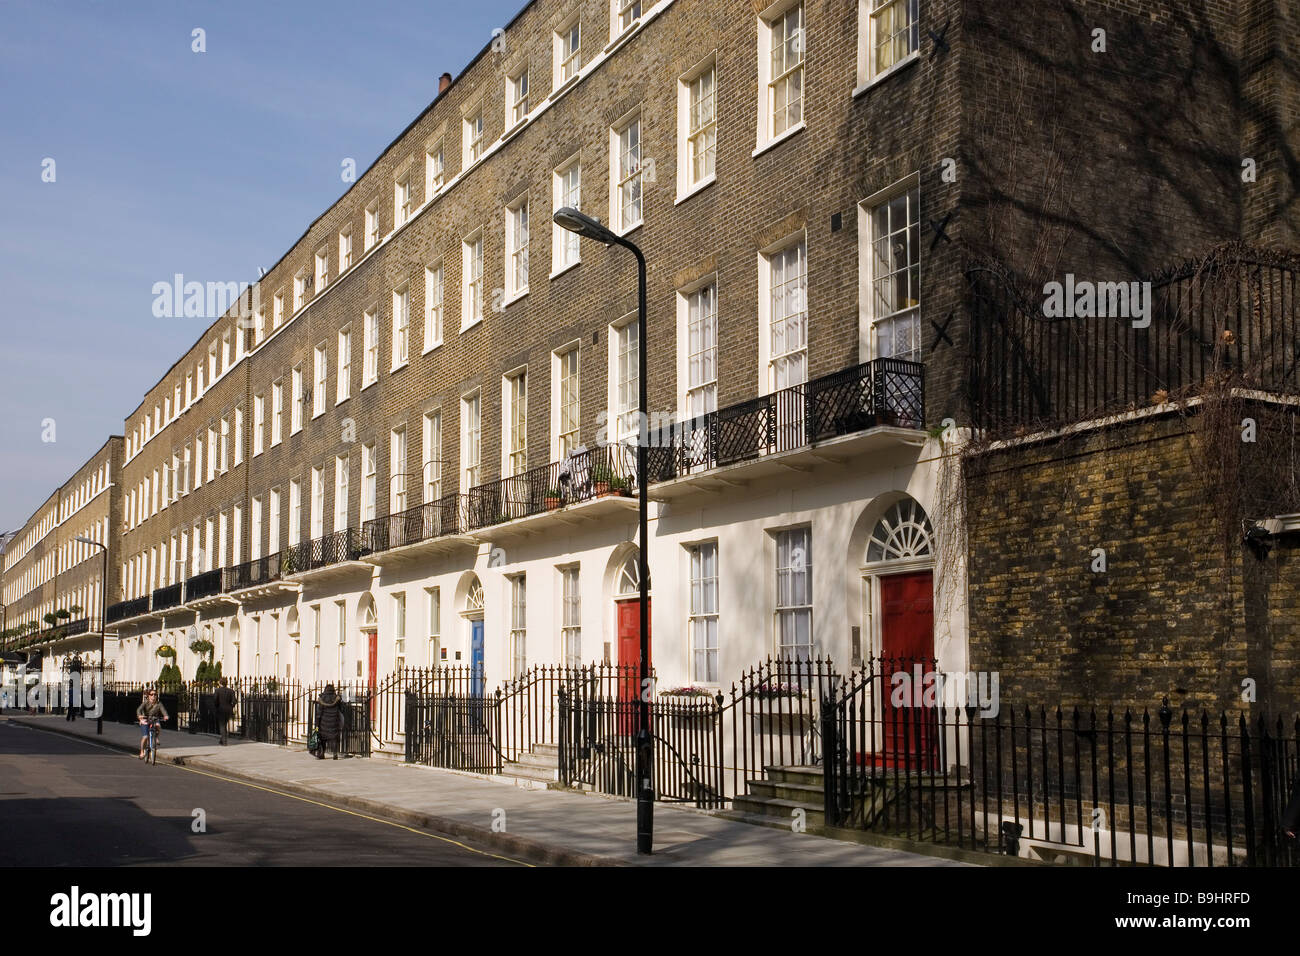 Terraced housing in central London - Stock Image